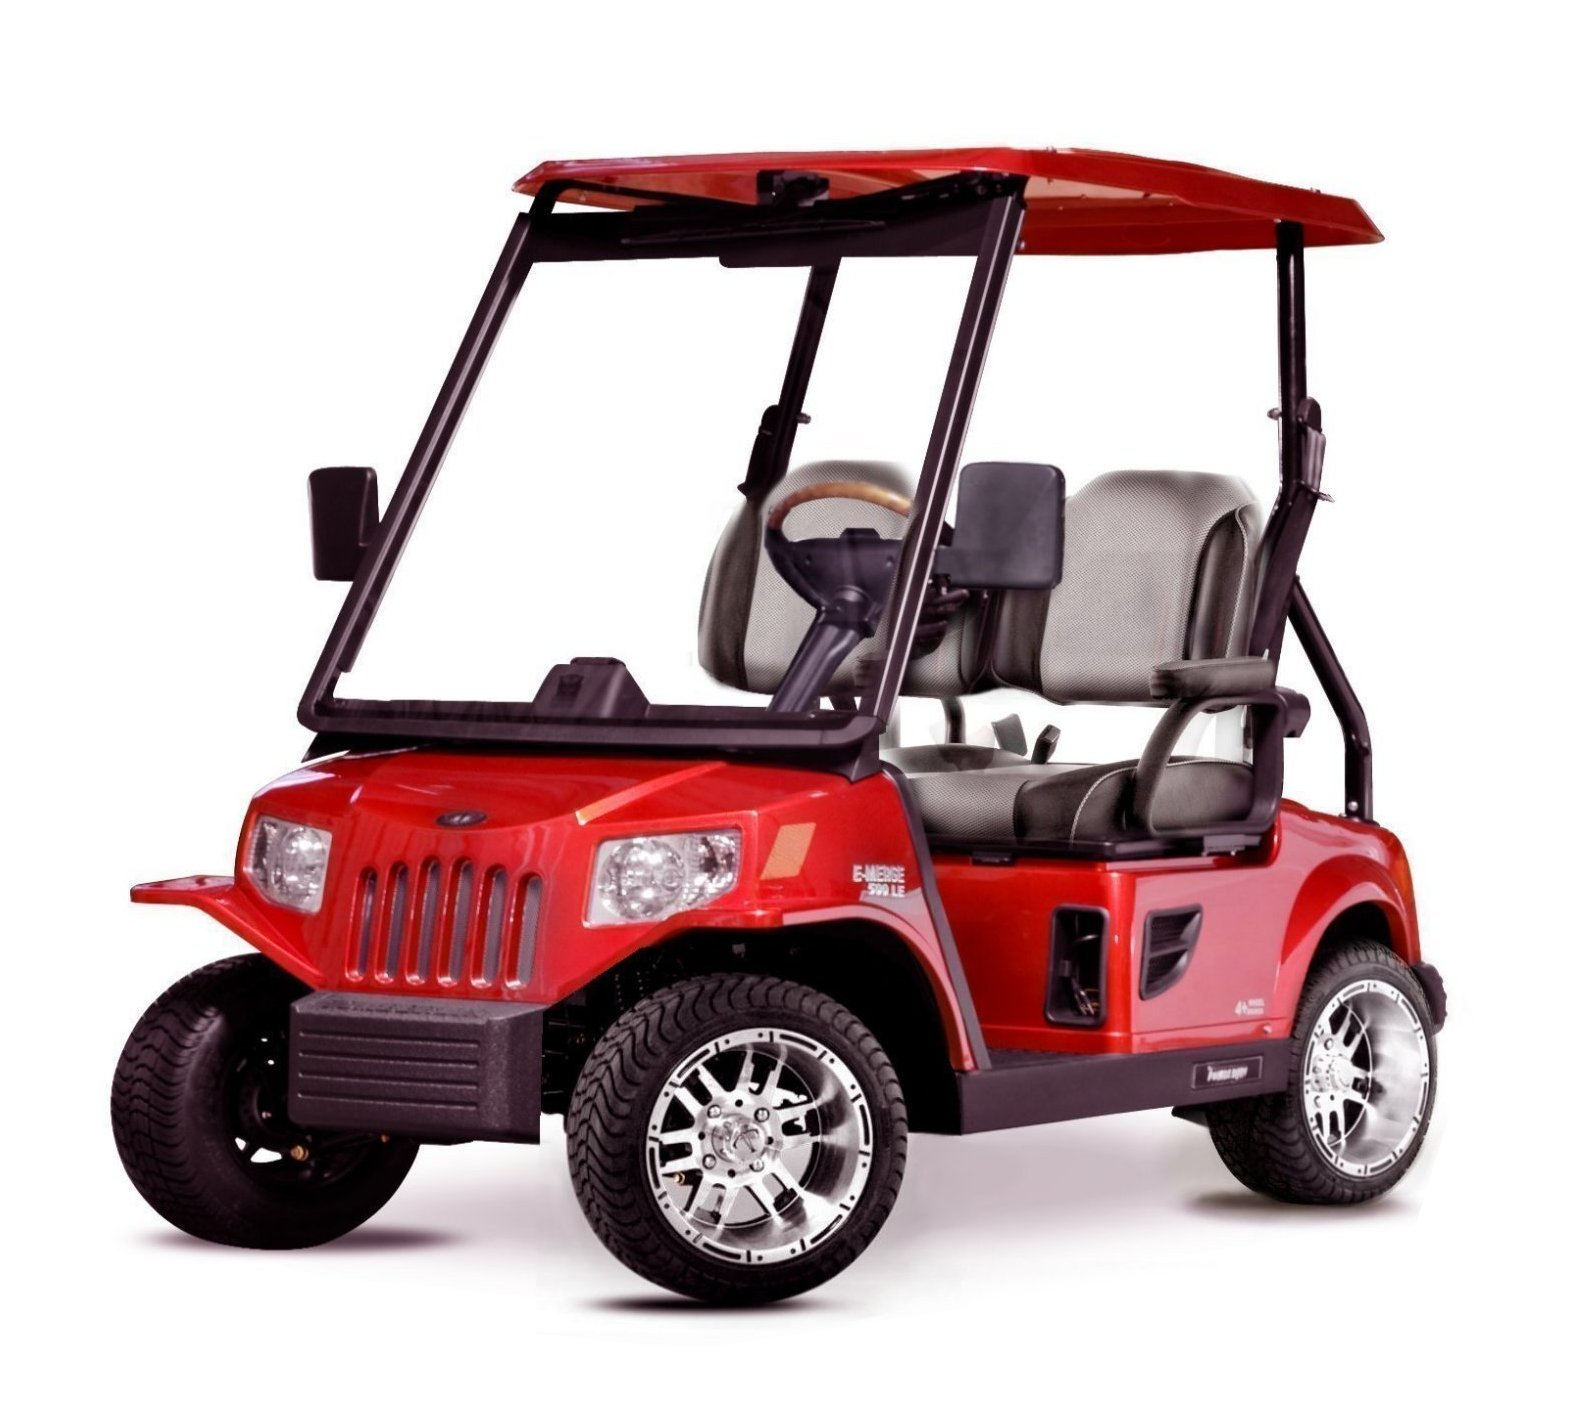 Southeastern Auto Brokers Inc >> Wildar Golf Carts and Trailers in Fort Pierce, FL (Golf ...